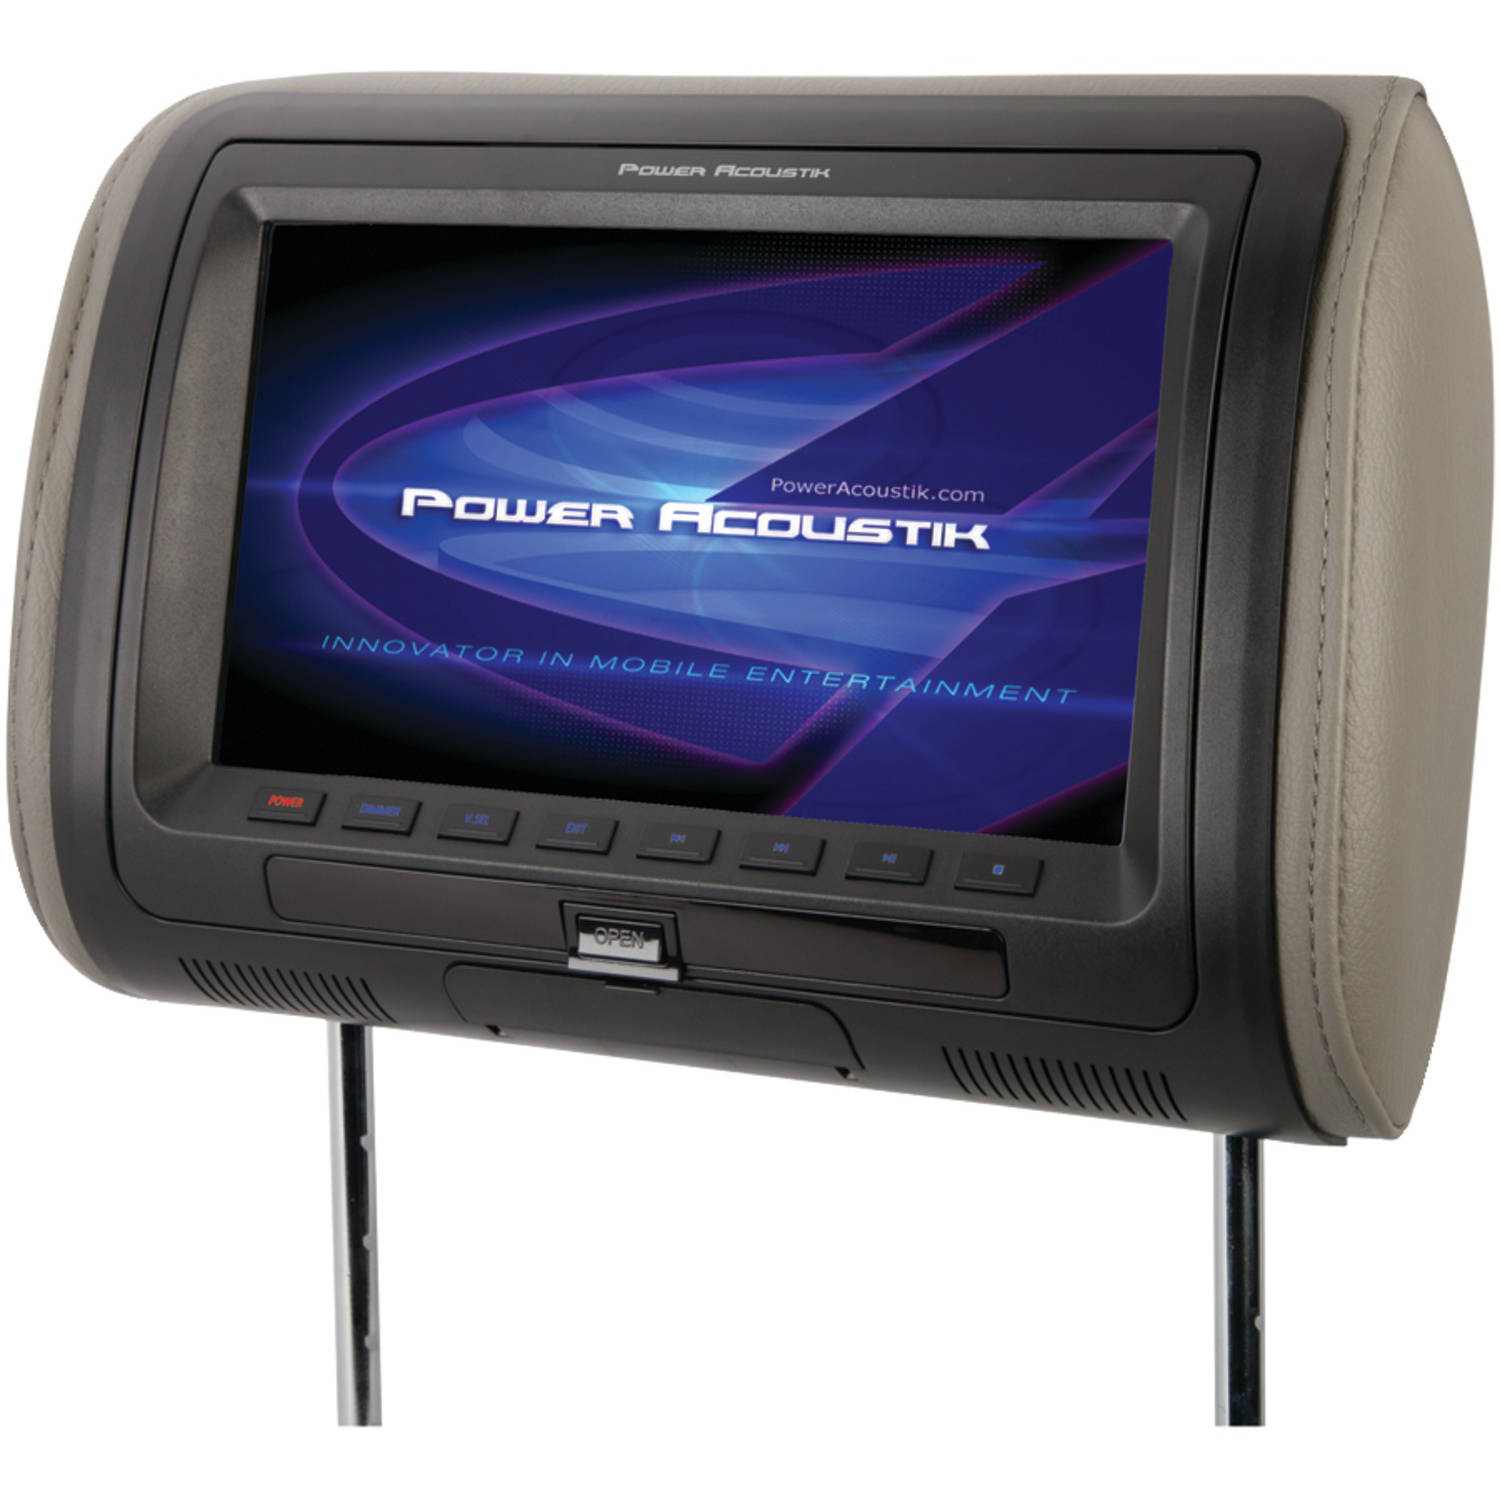 """Power Acoustik HDVD71HD 7"""" Universal Headrest Monitor with MHL MobileLink and Interchangeable Skins with DVD Player"""